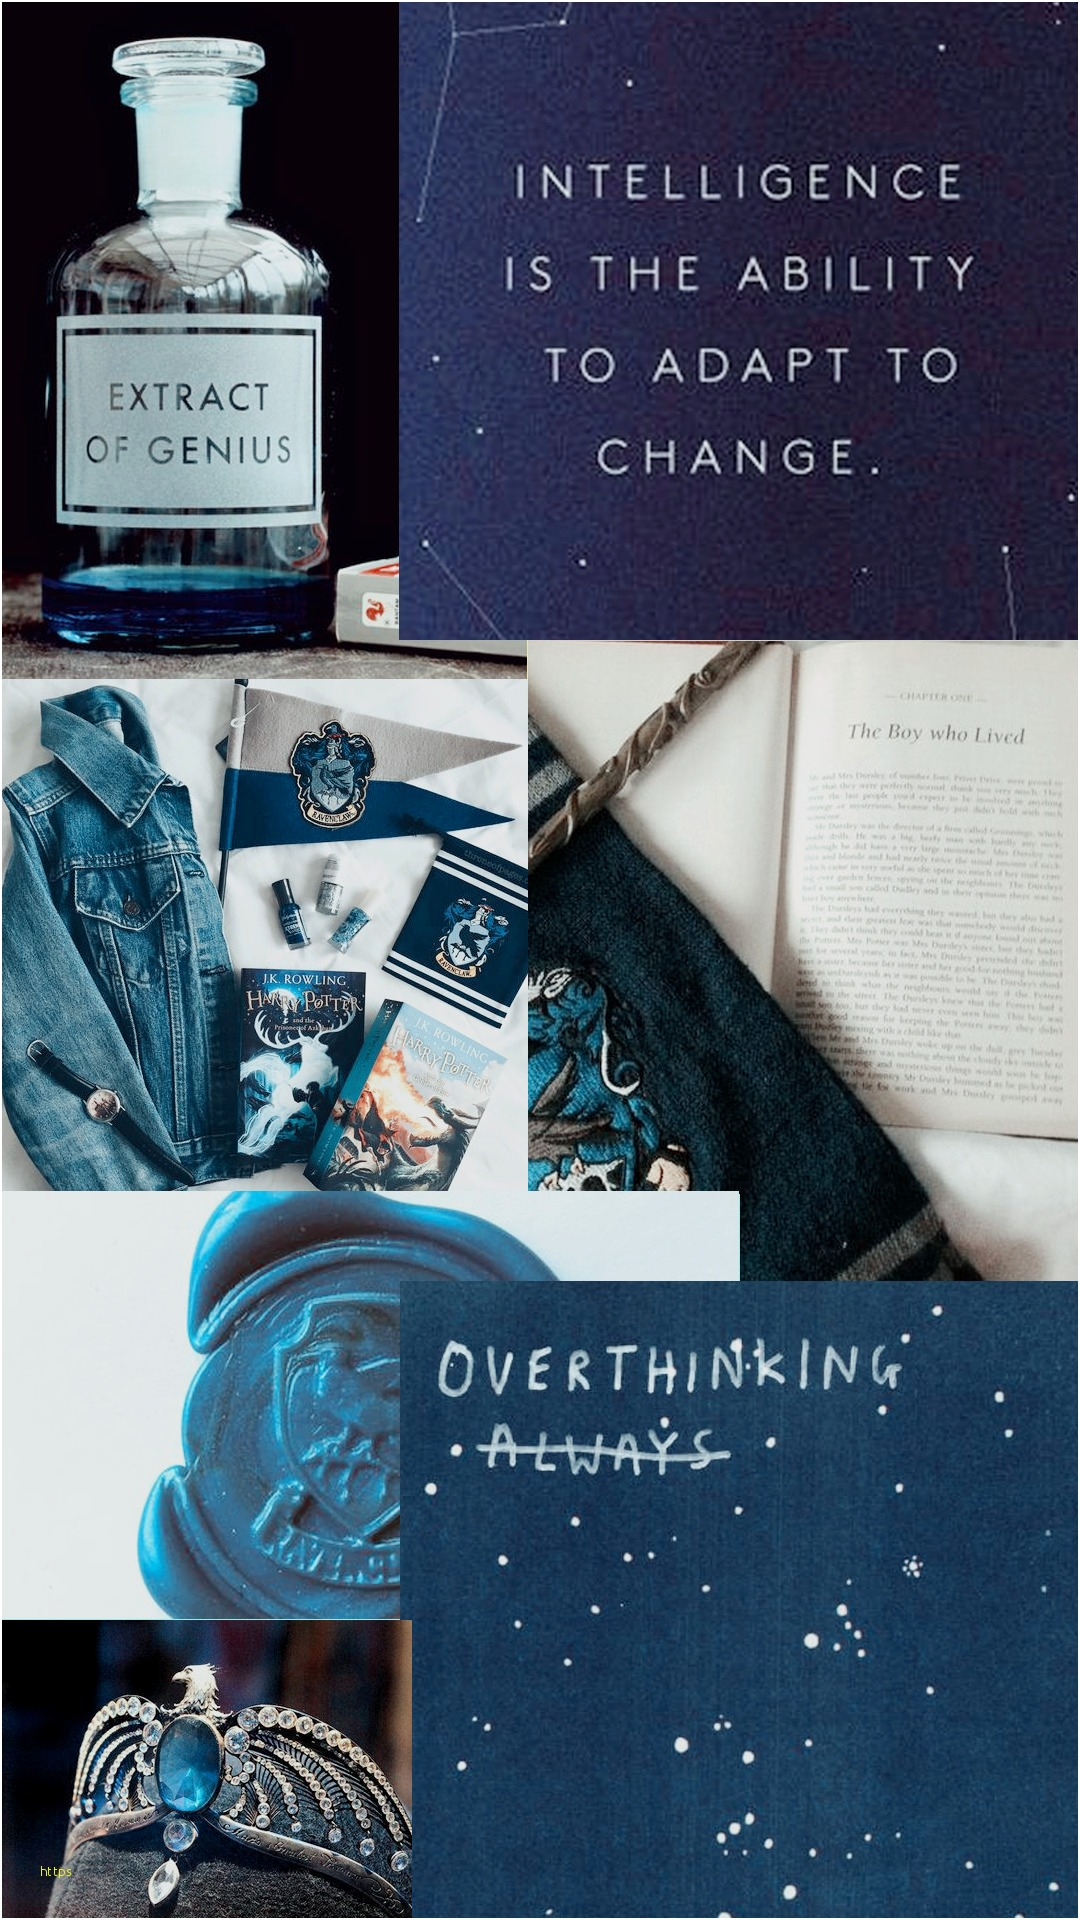 Ravenclaw Wallpapers Awesome Harry Potter iPhone Wallpapers Ravenclaw